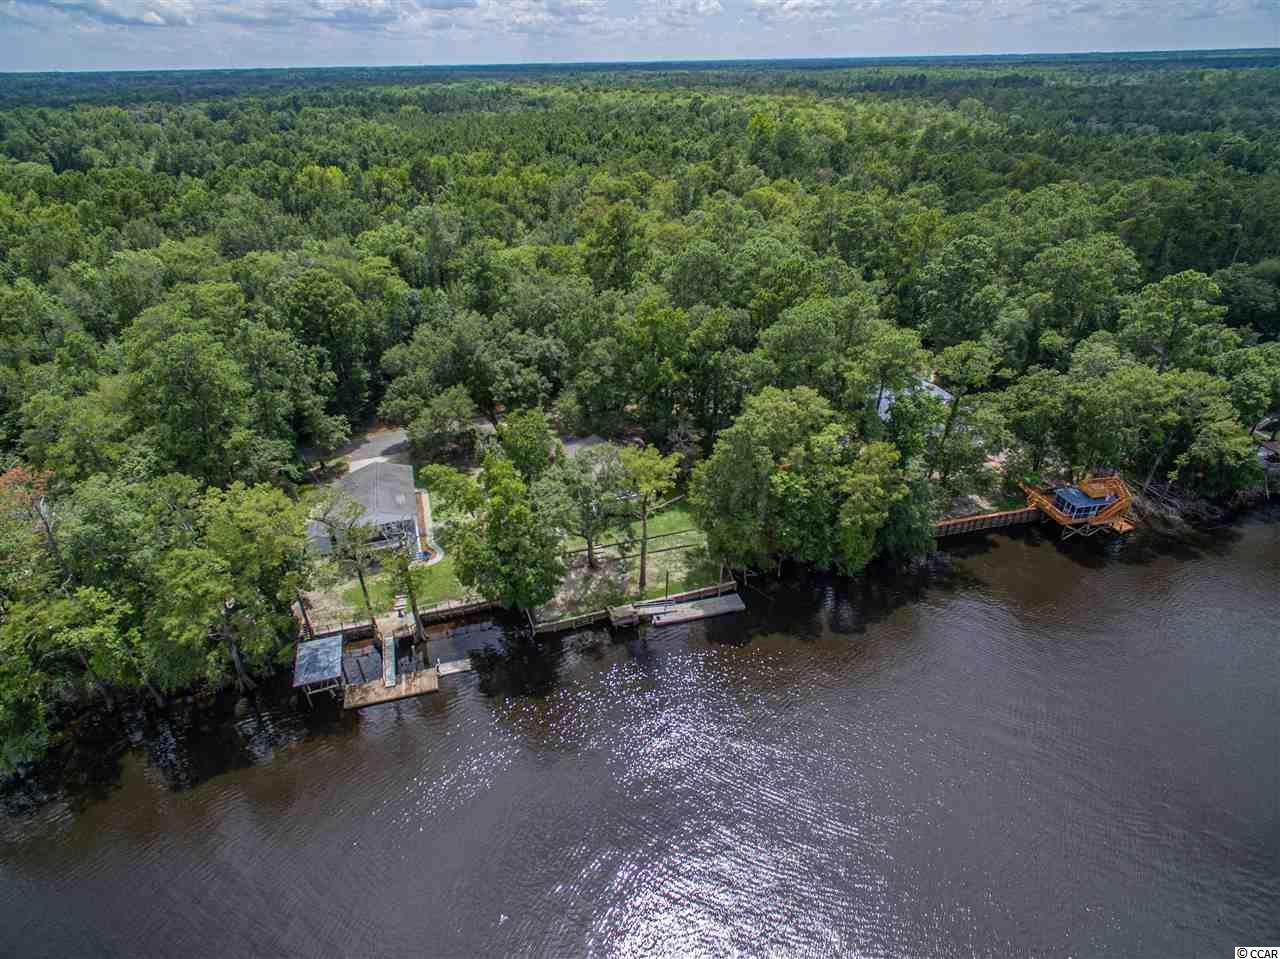 Beautiful, Ready to Build on Lot on the Waccamaw River. One of the last remaining river front lots in this section!  This lot has Amazing views of the River and is only yards away from a public boat landing. Don't let this opportunity pass you by!